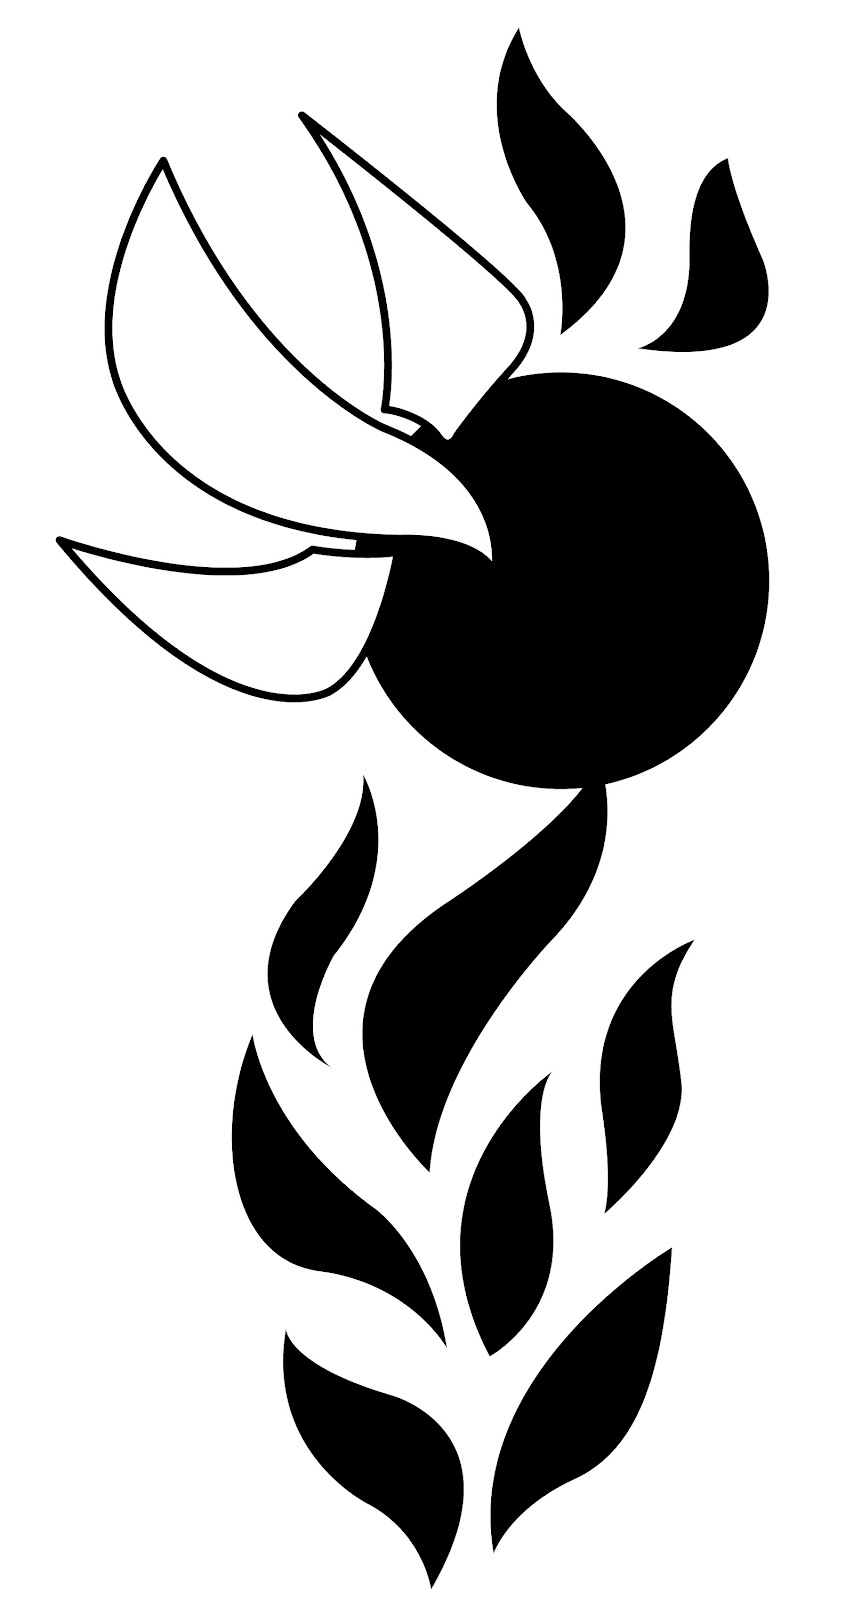 Holy spirit flame clip art.